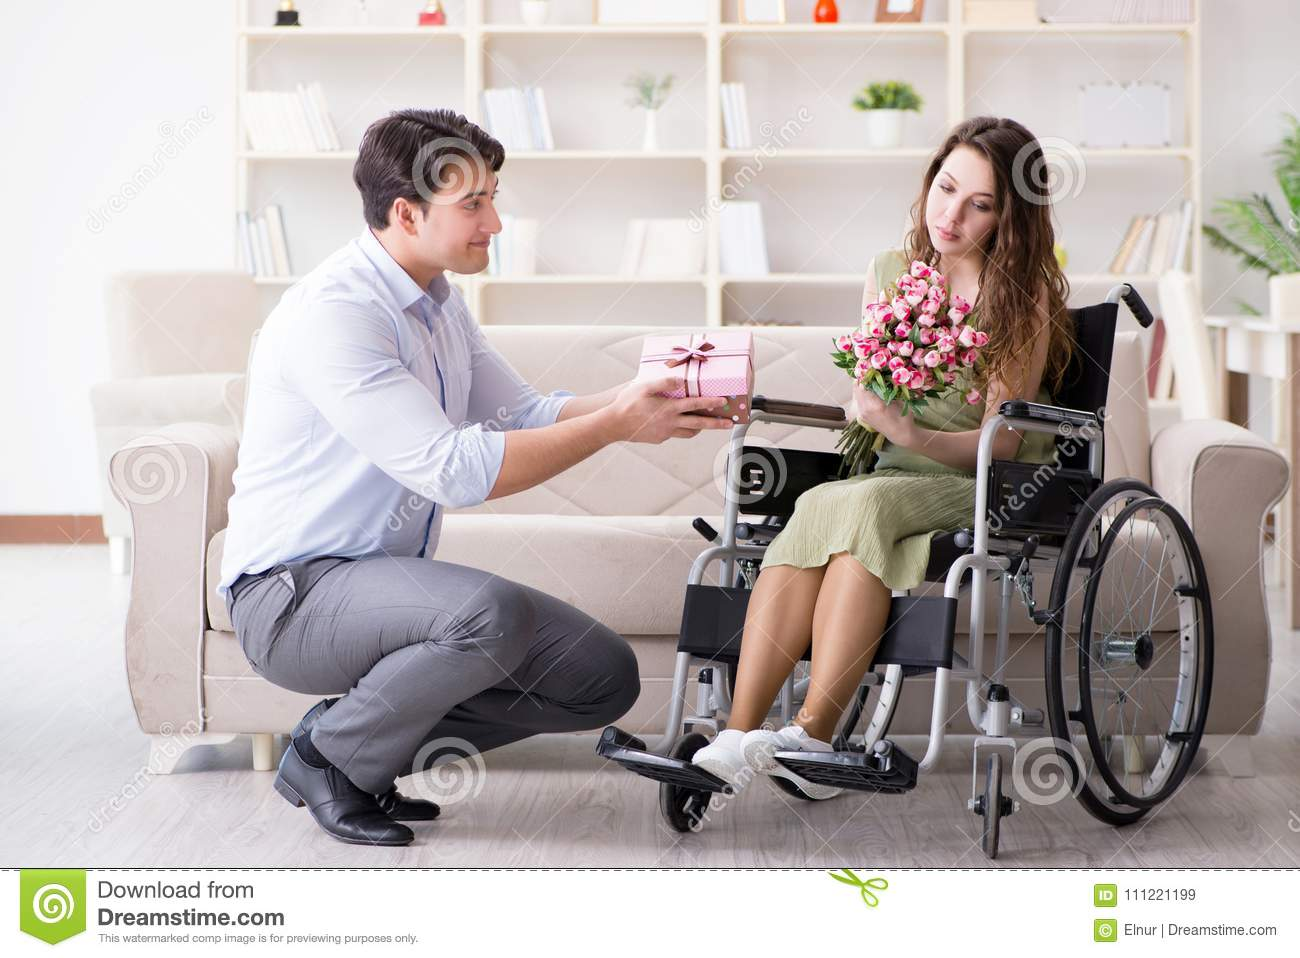 He decided to marry a disabled person